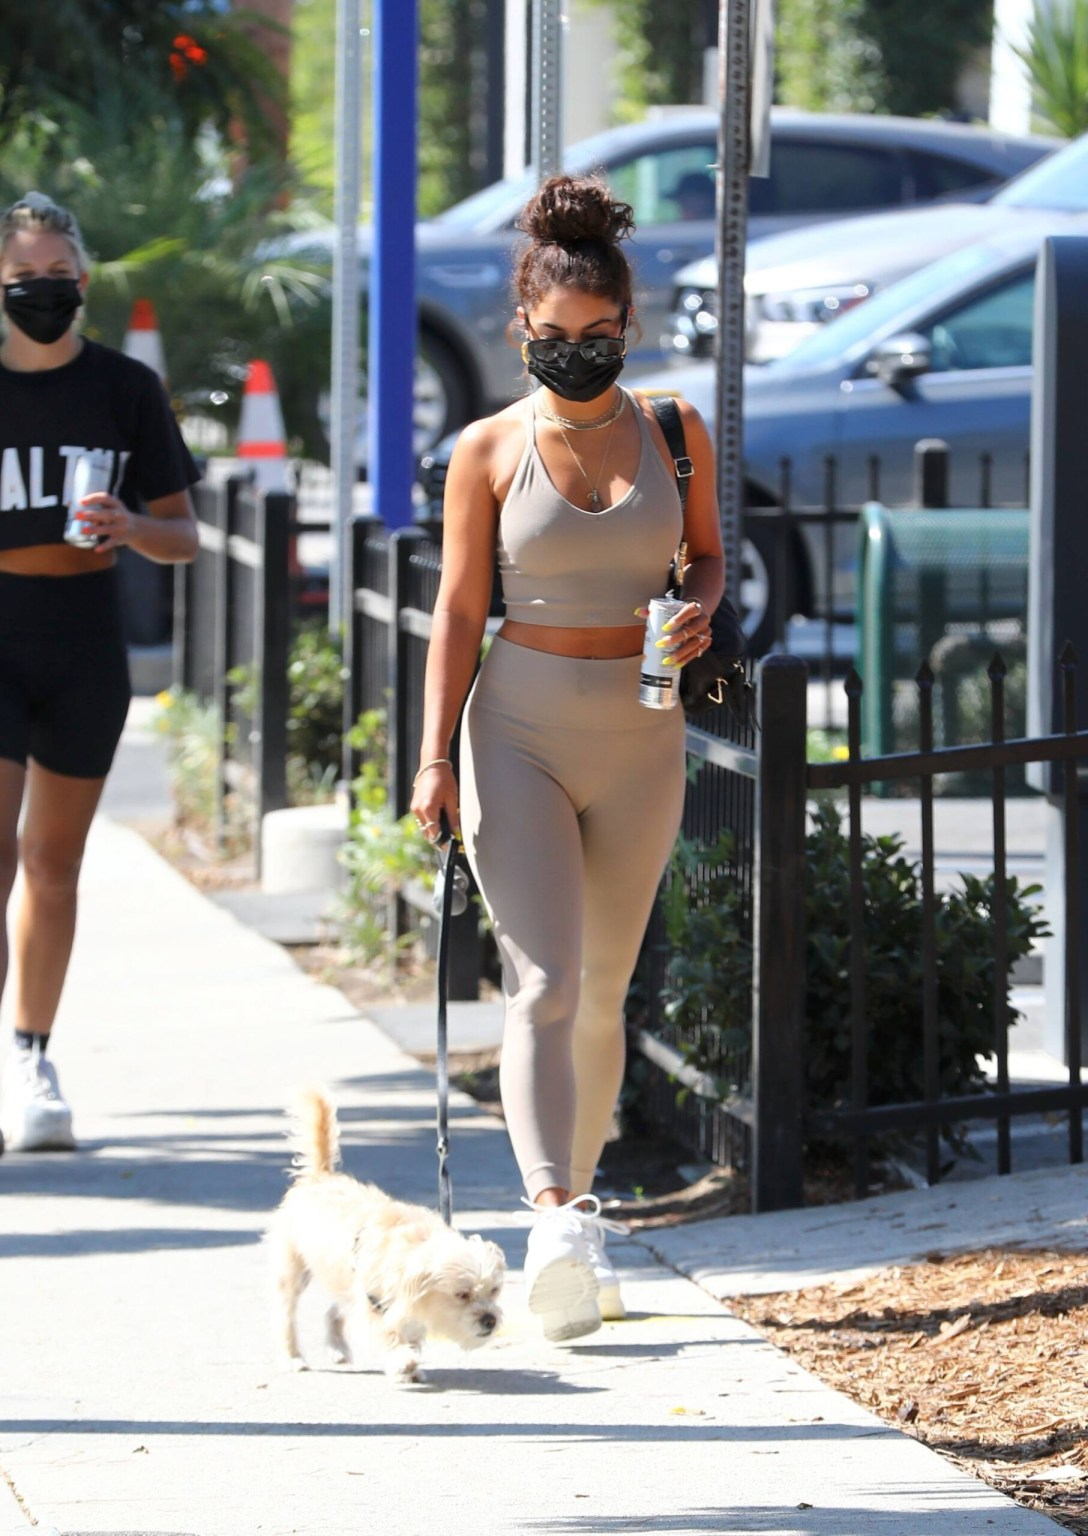 Vanessa Hudgens In Gym Outfit   Hot Celebs Home